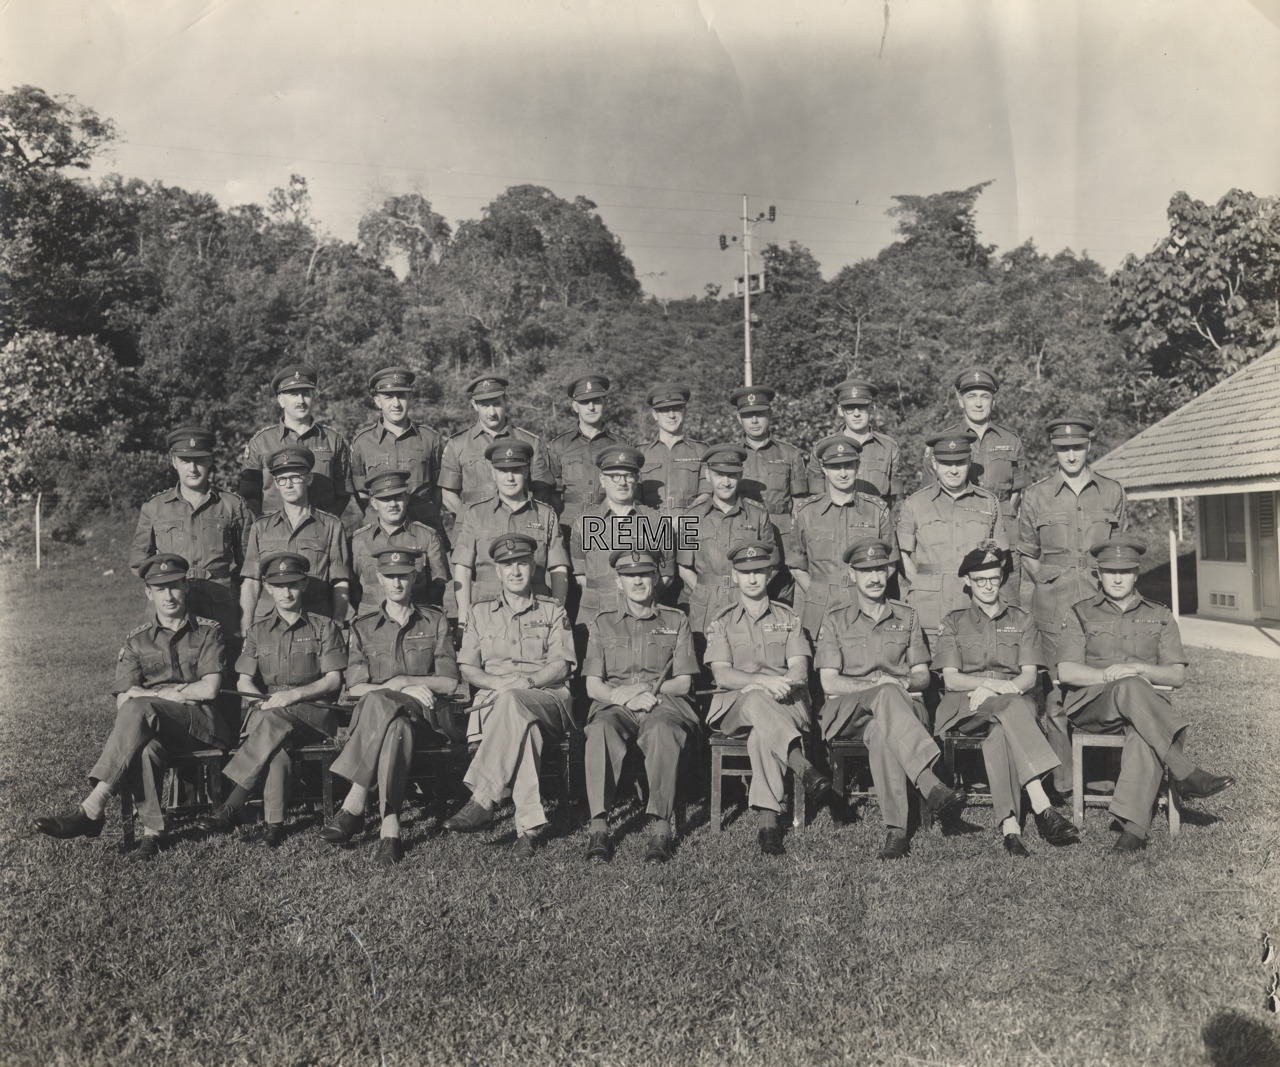 Officers of HQ 28 Commonwealth Independent Infantry Brigade Group, Malaya (Malaysia)